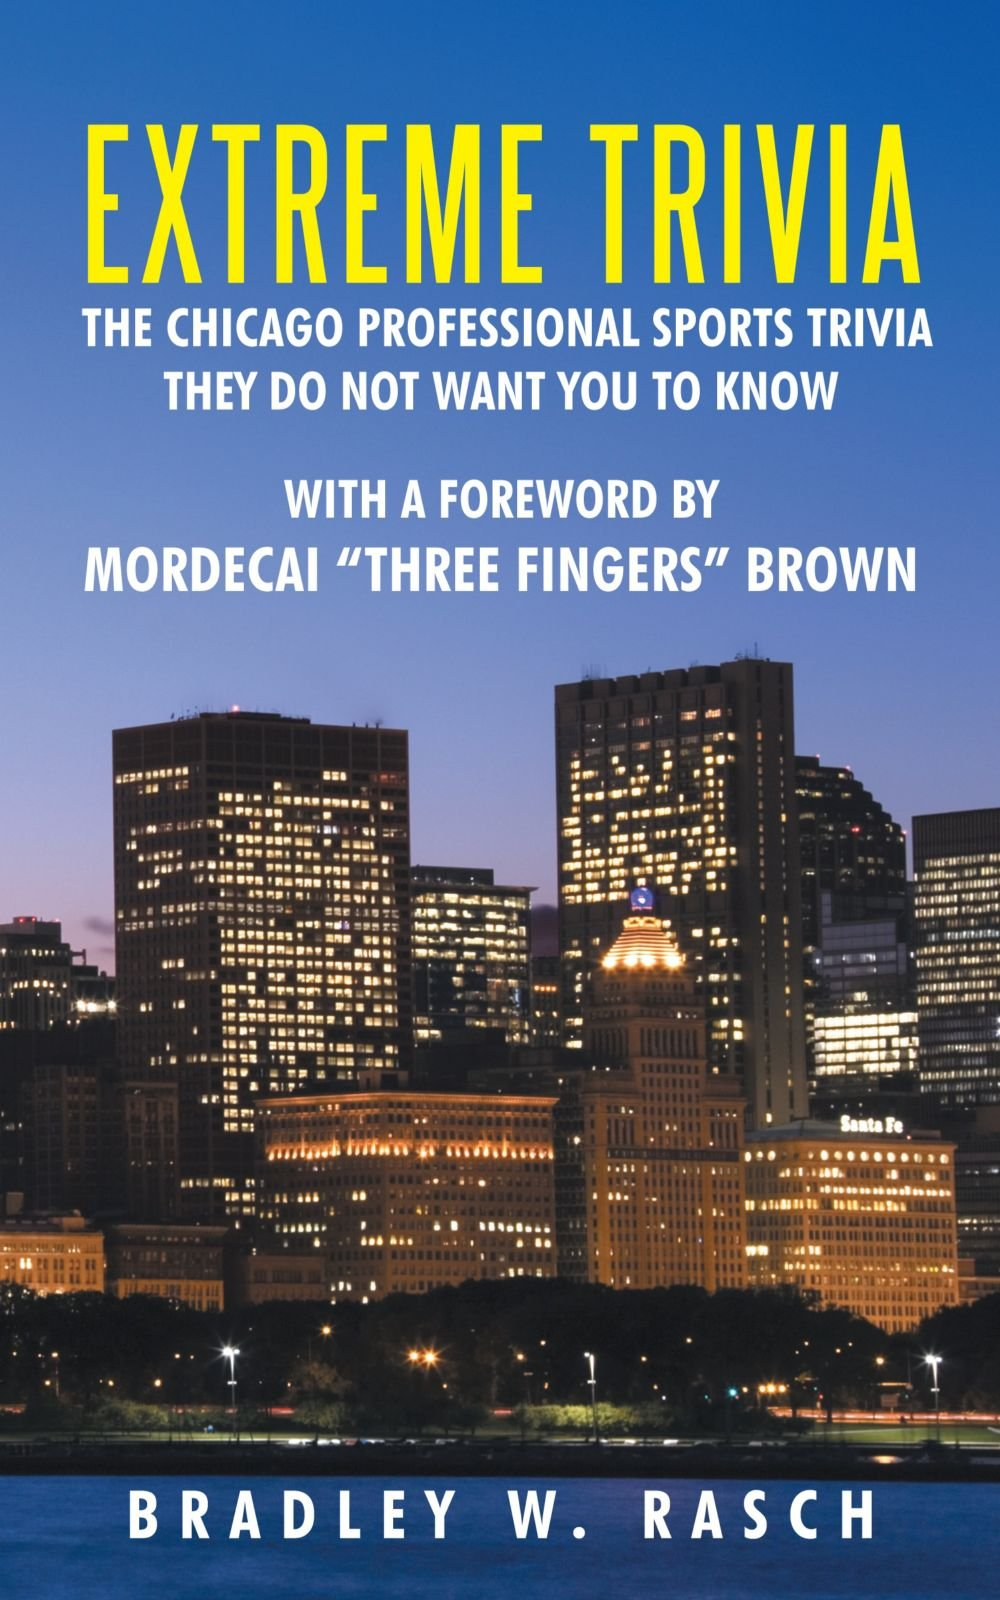 """Download Extreme Trivia: The Chicago Professional Sports Trivia They Do Not Want You to Know: With a Forword by Mordecai """"Three Fingers"""" Brown ebook"""